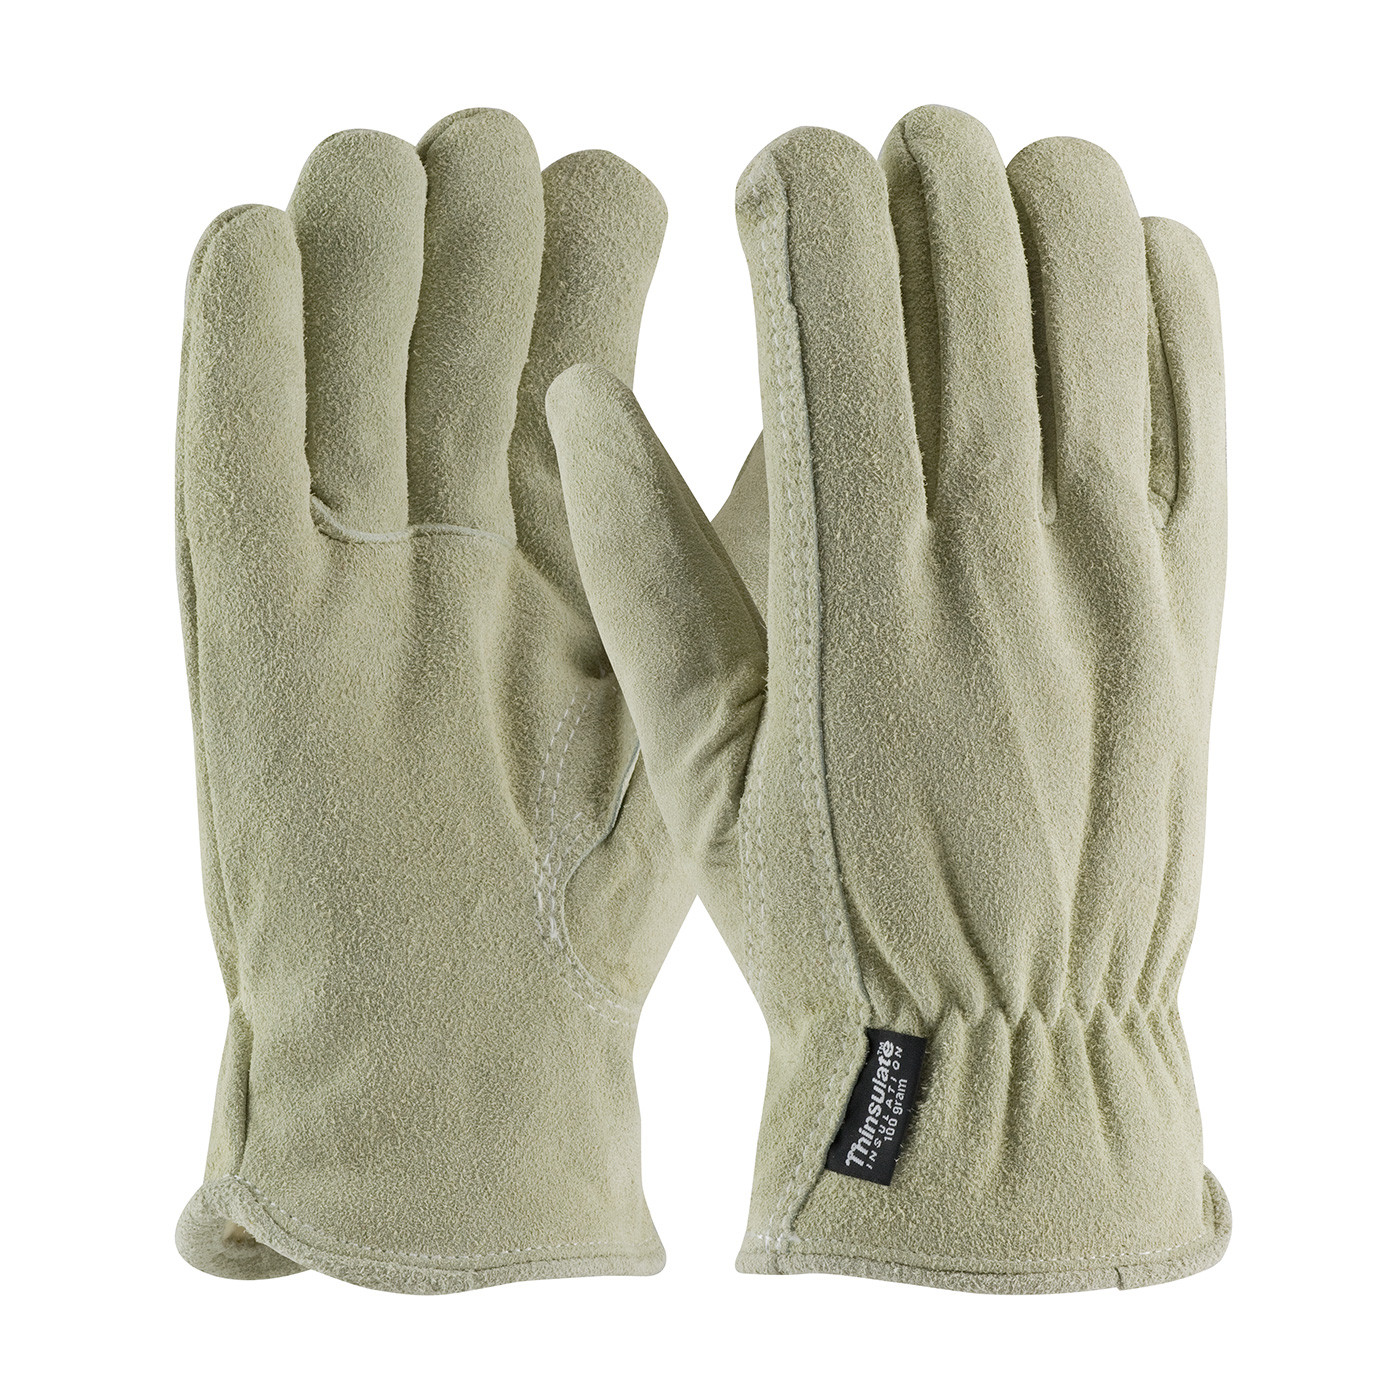 Split Cowhide Leather Drivers Glove with 3M™ Thinsulate™ Lining - Keystone Thumb, Natural, S